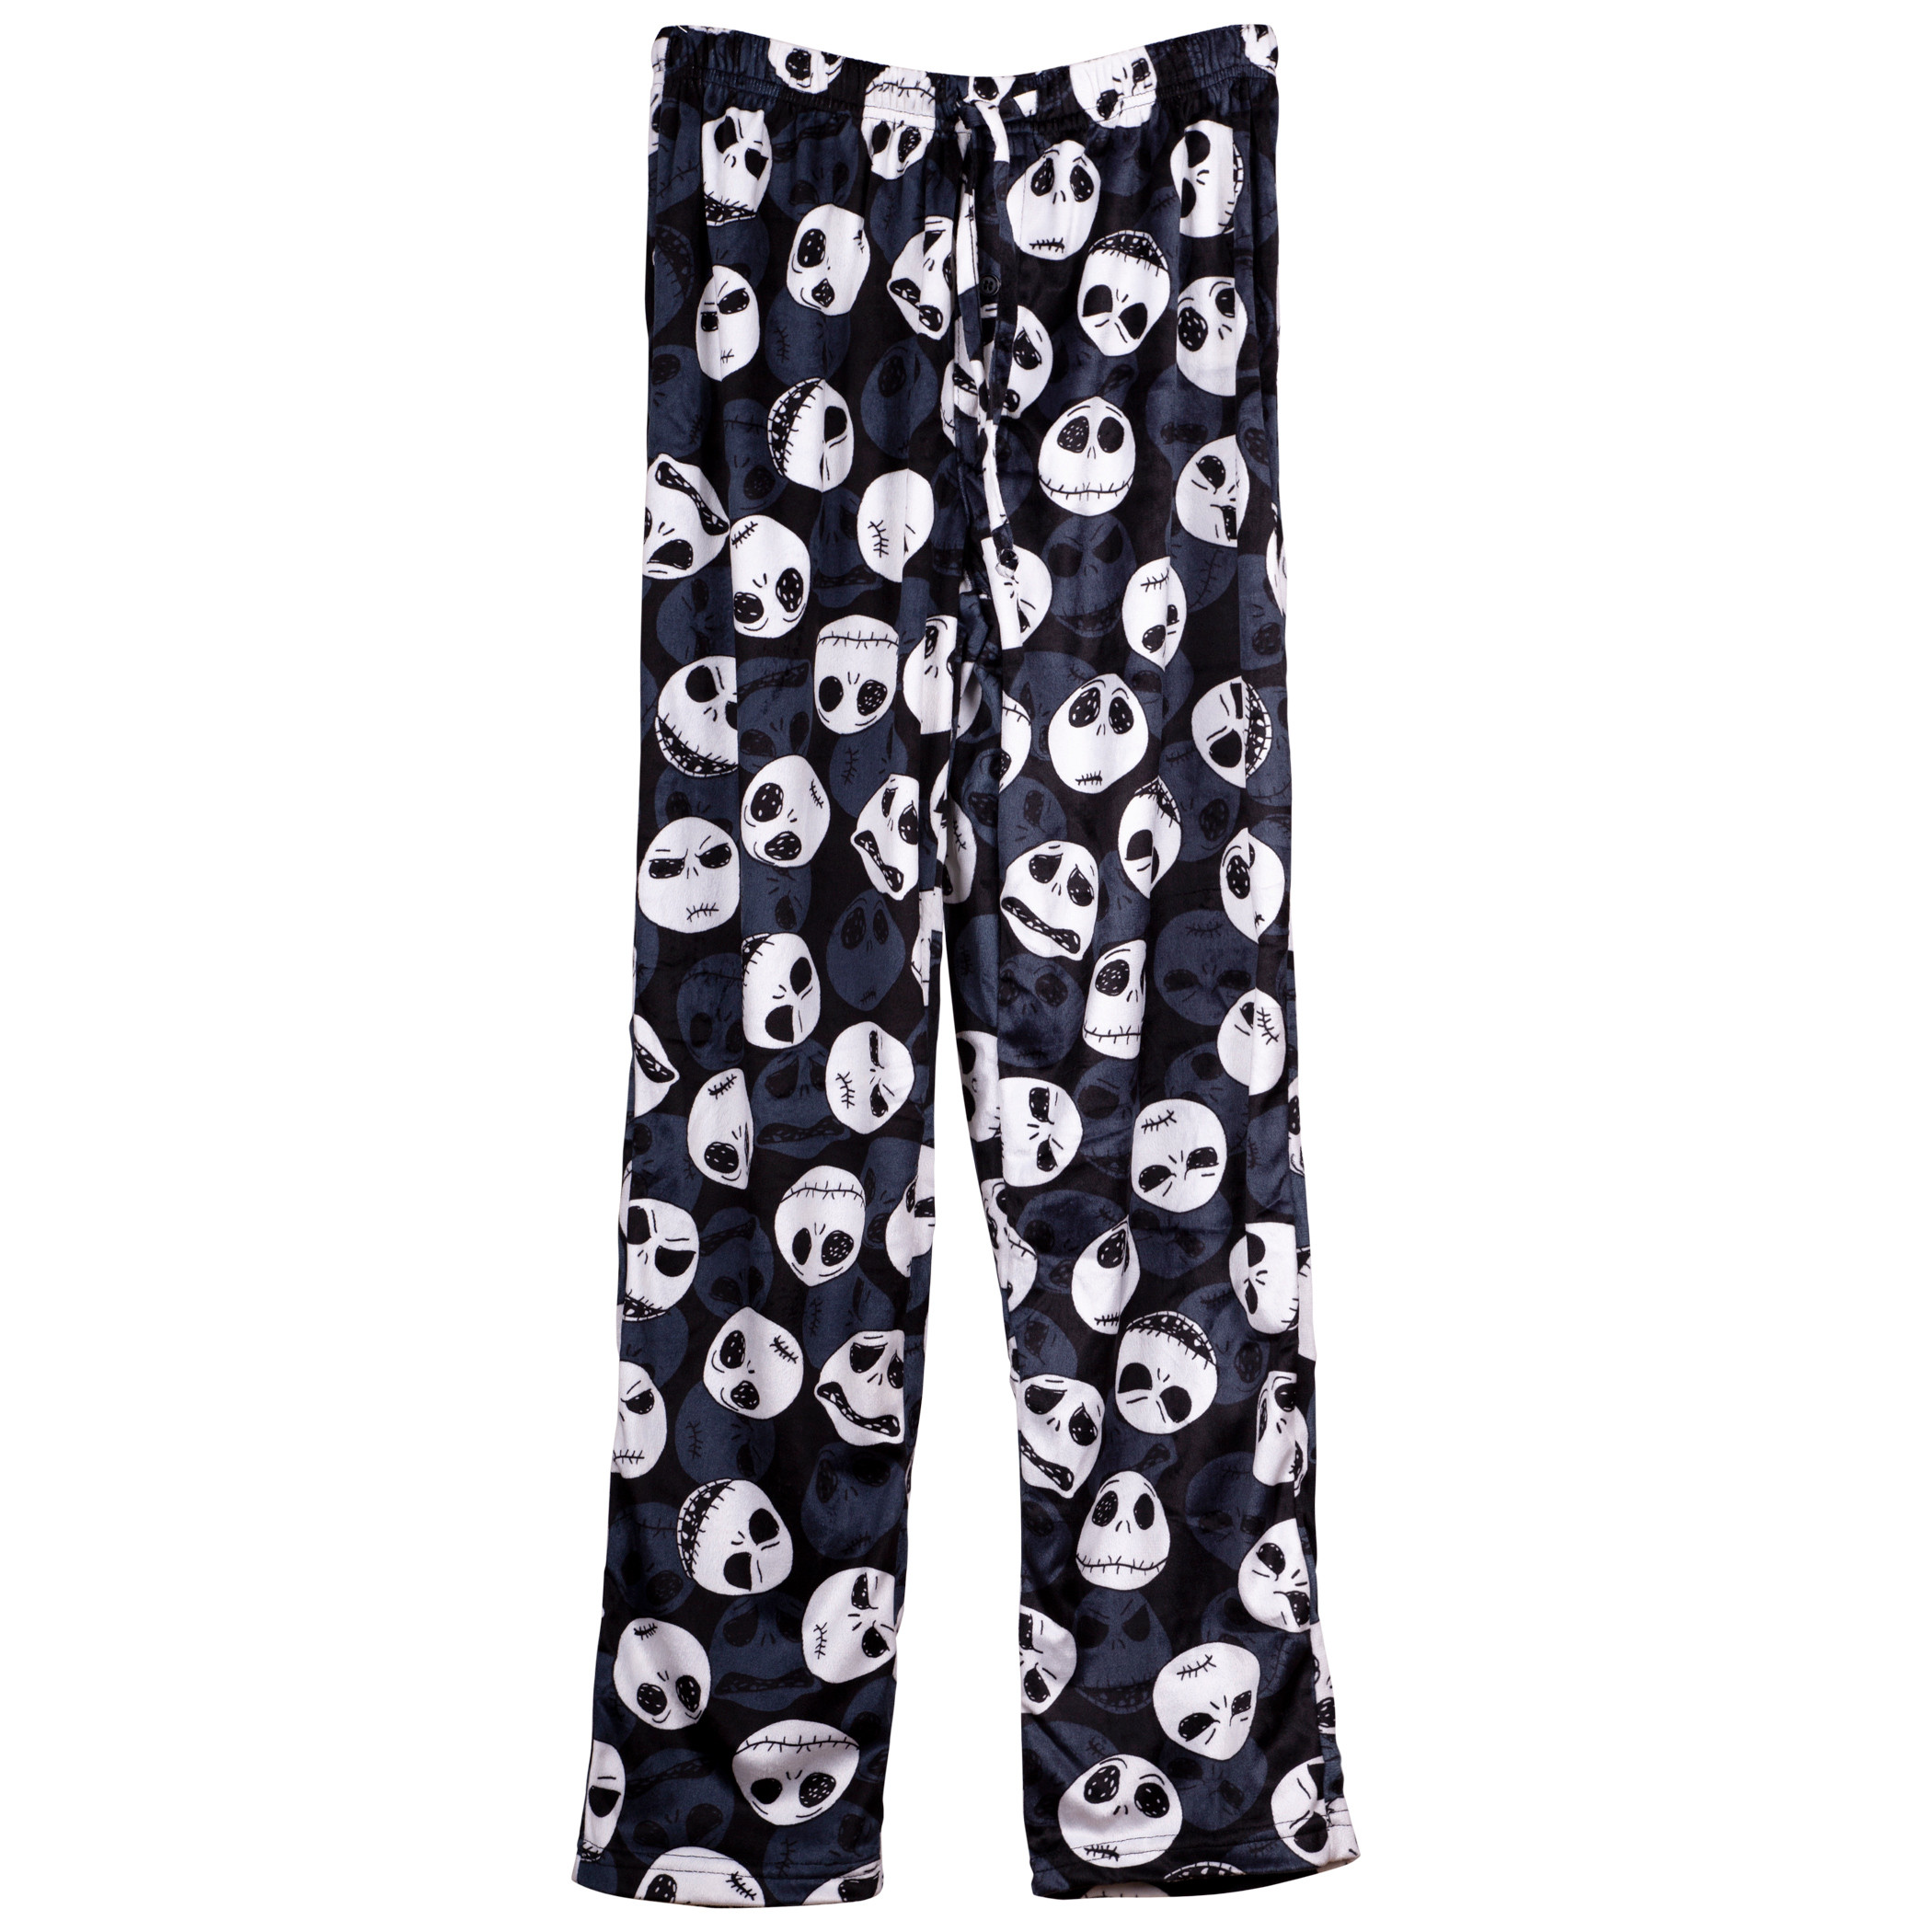 Pyjama Nightmare before Christmas pour homme